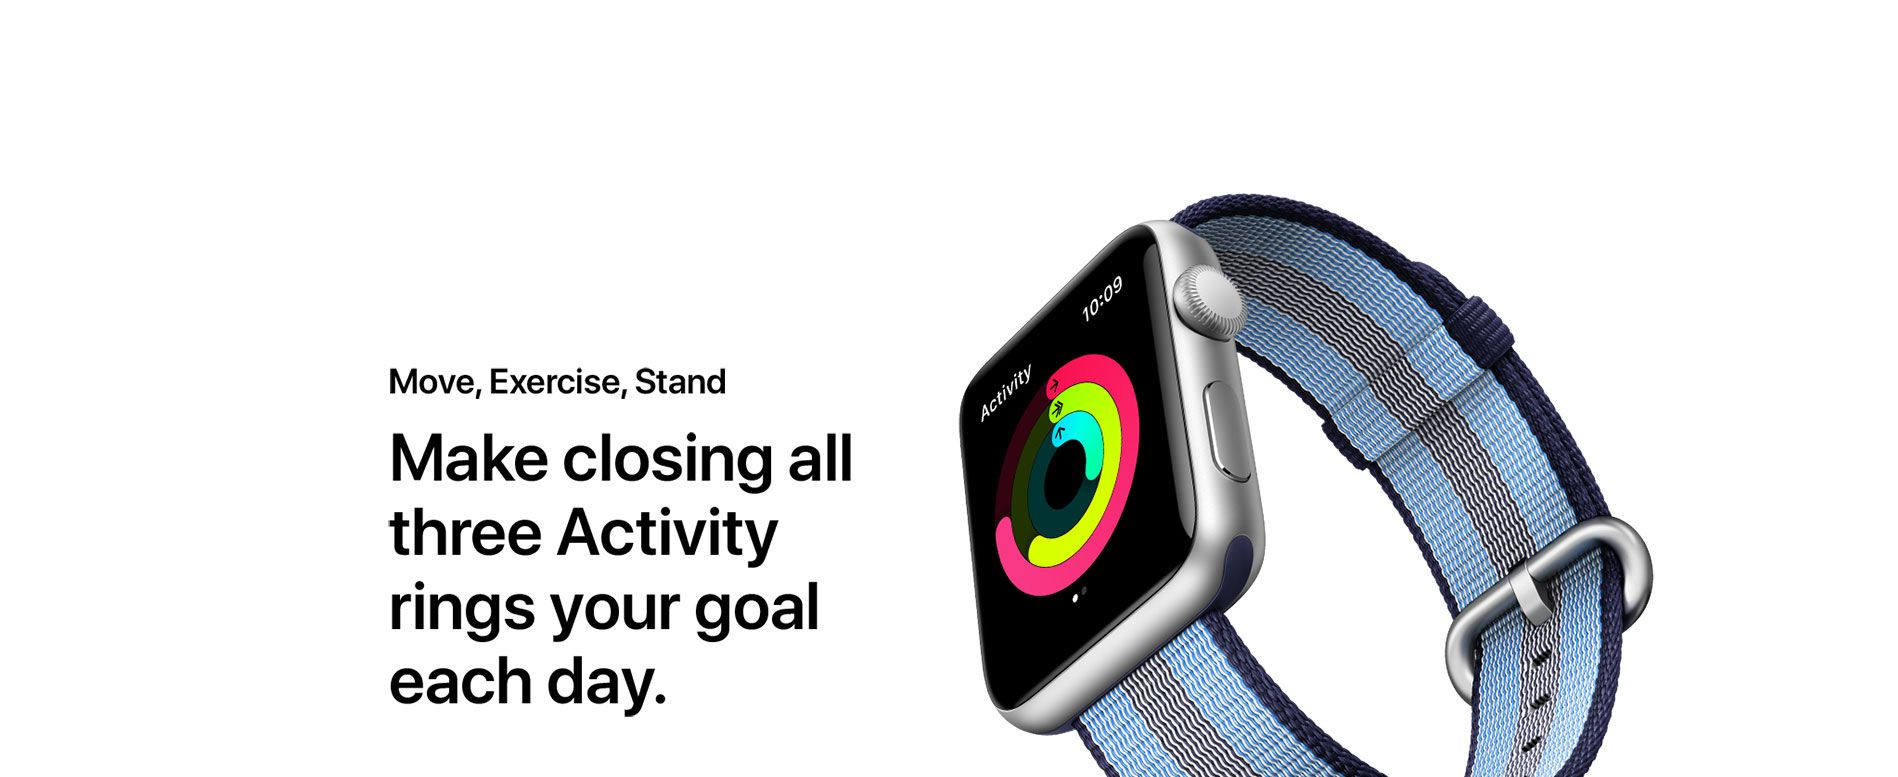 Move, Exercise, Stand - Make closing all three Activity rings your goal each day